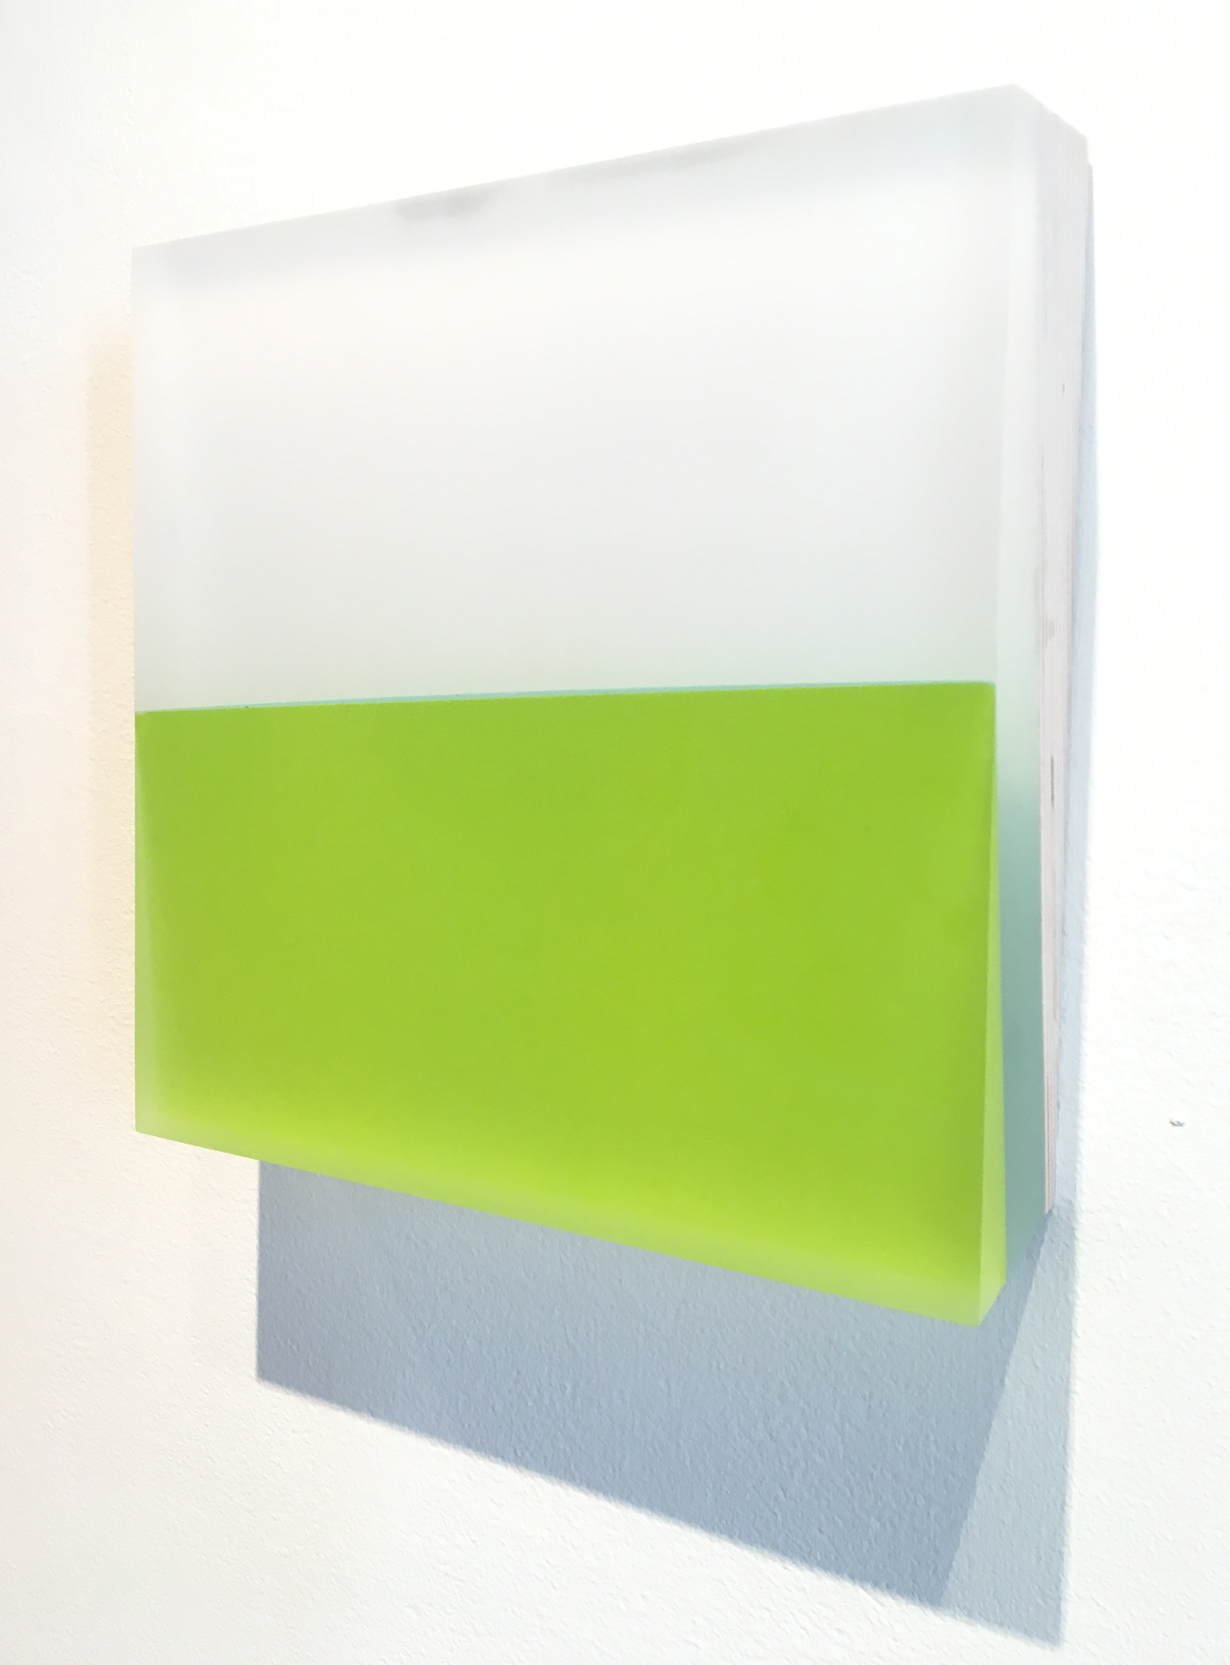 MICHELLE BENOIT | Surround, Chartreuse